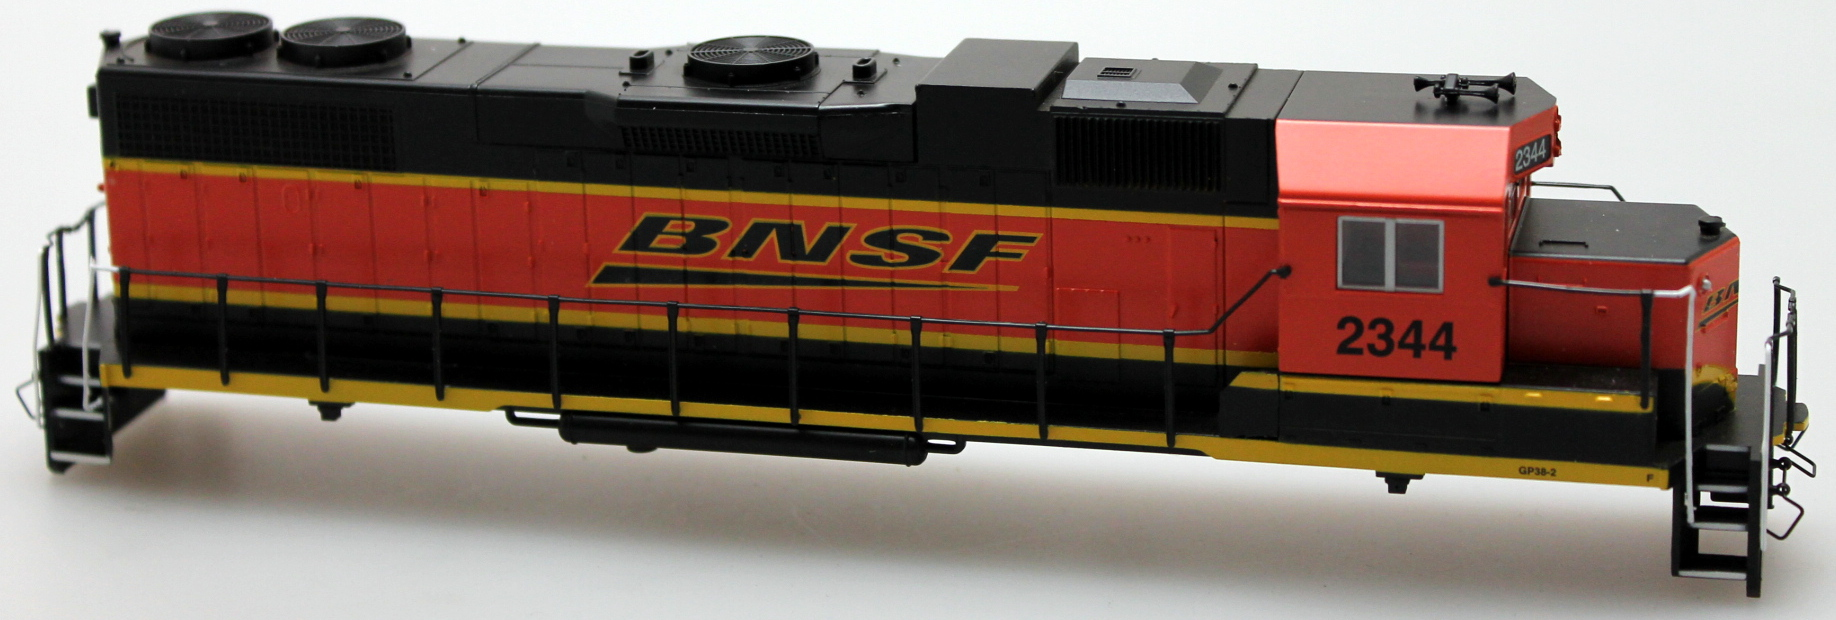 Body Shell - BNSF #2344 (HO GP38-2)